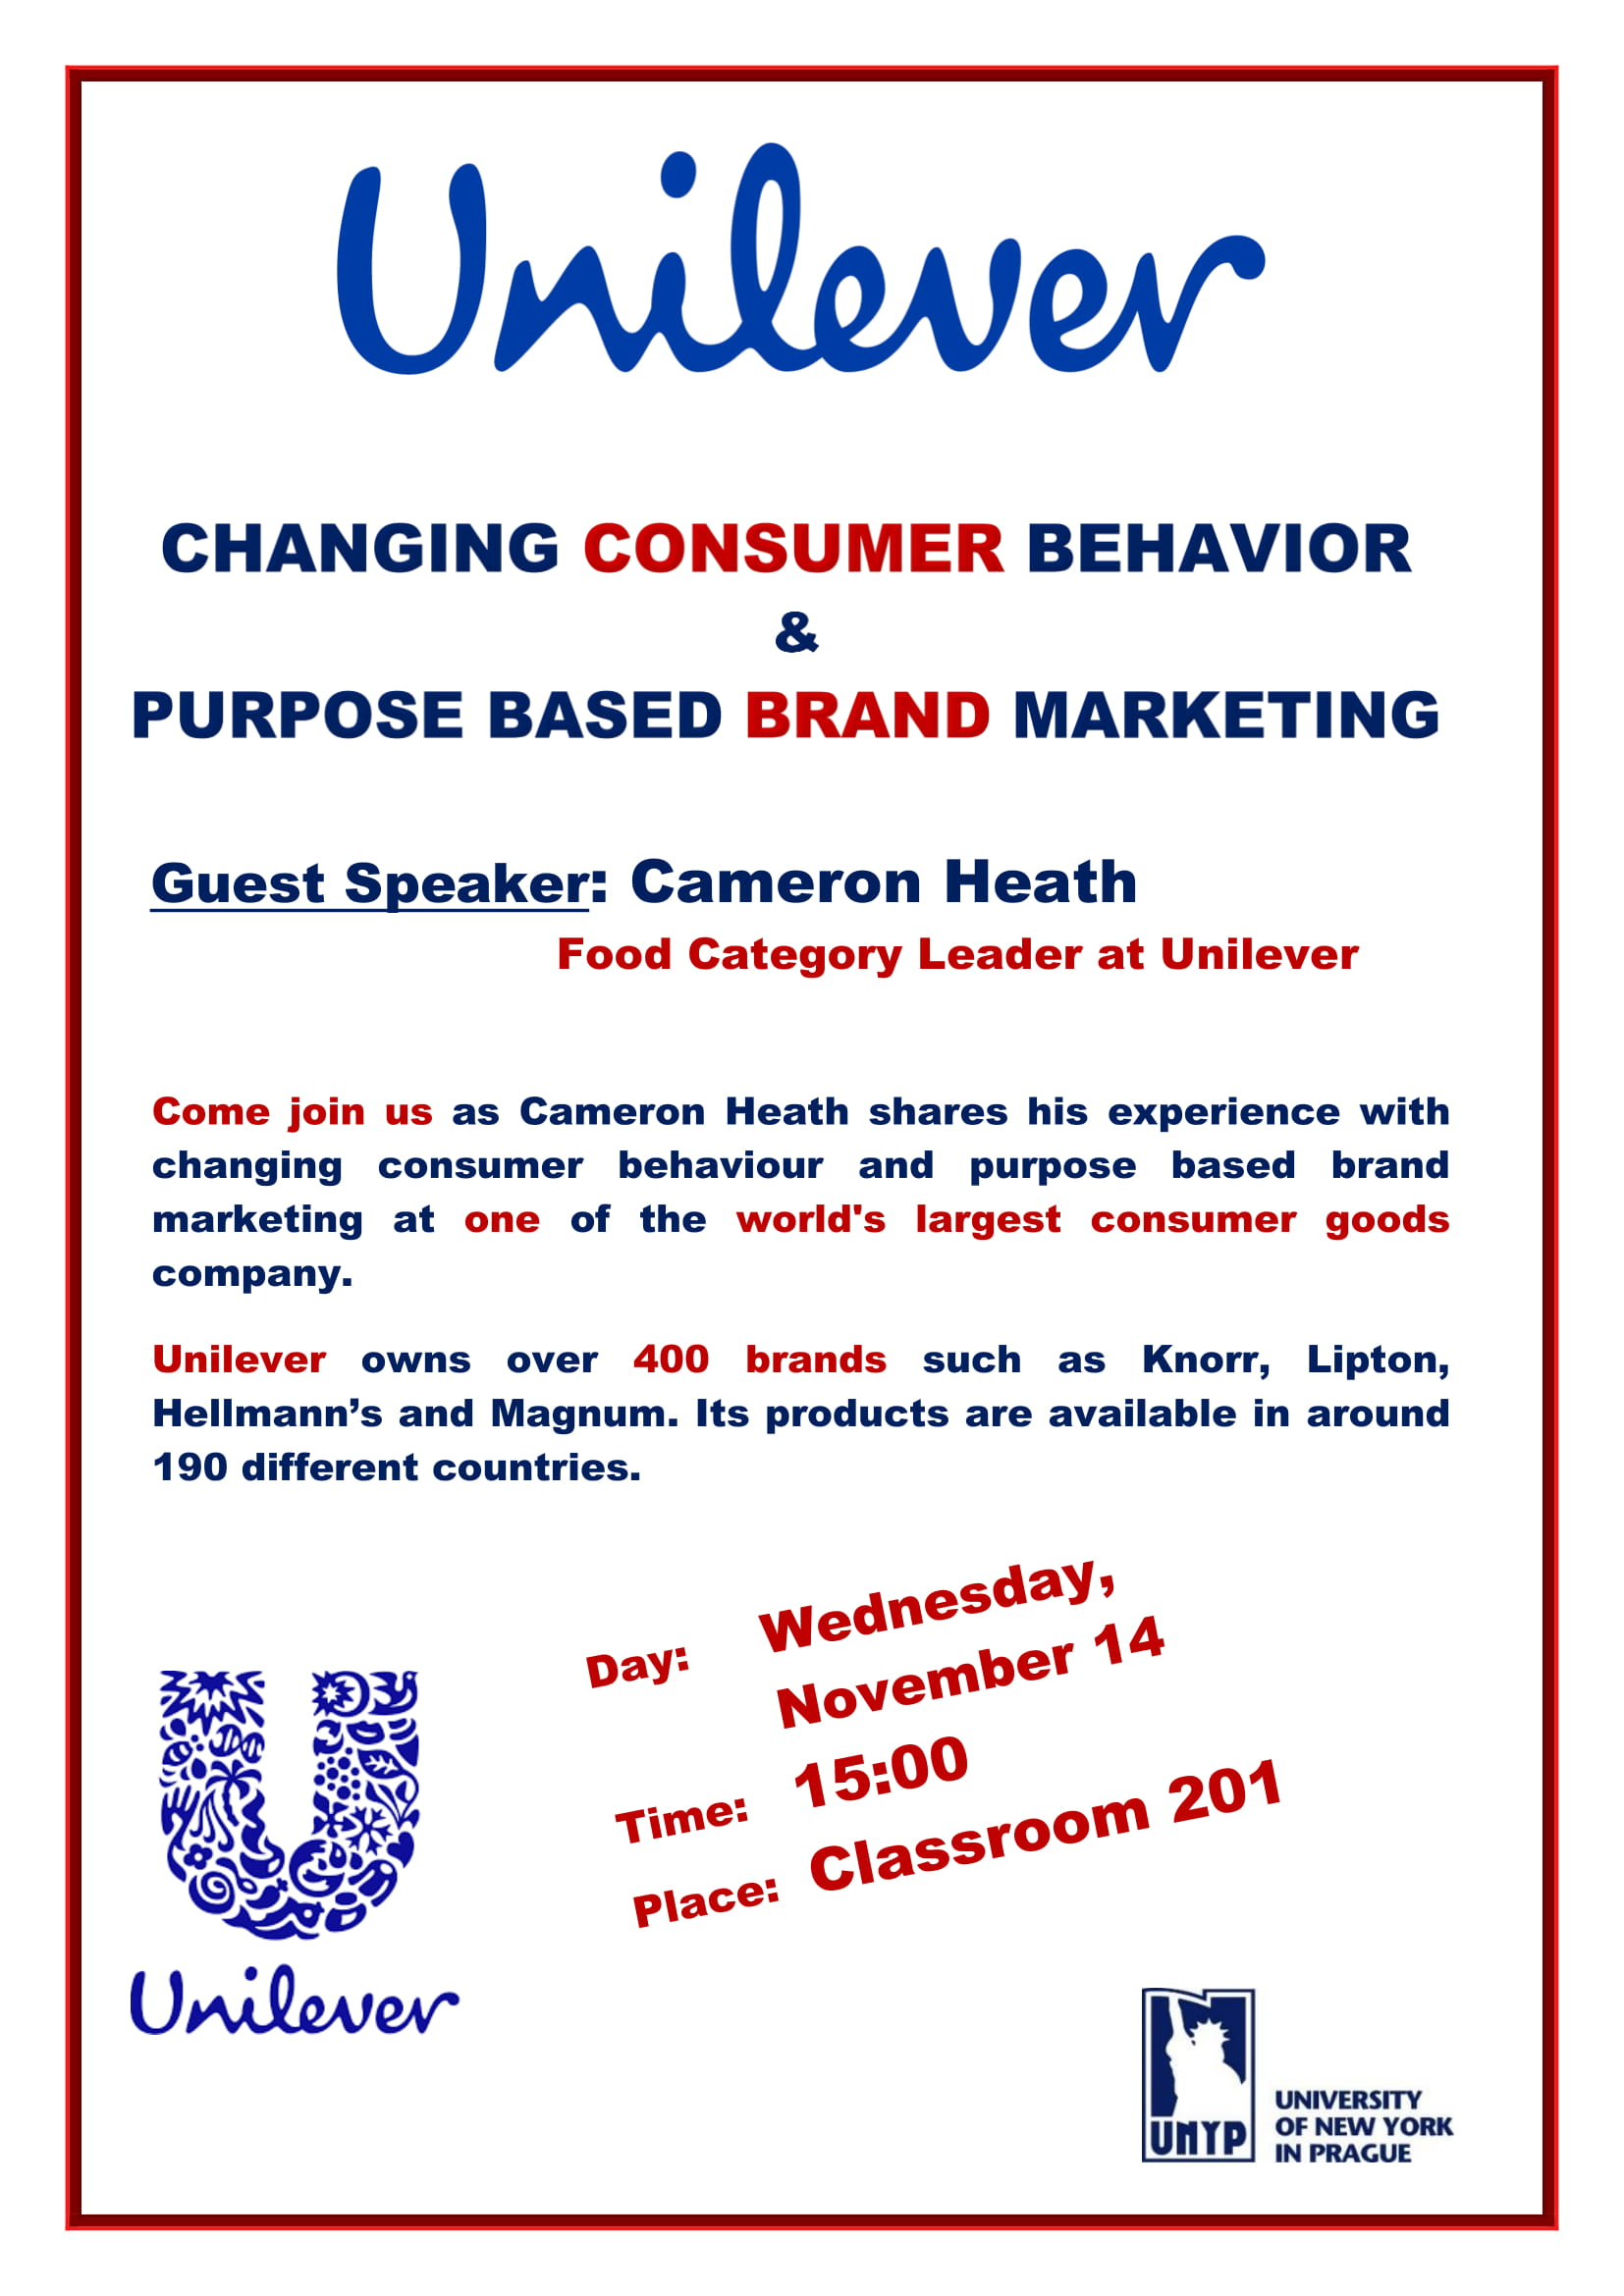 Unilever Consumer Behavior and Brand Marketing Lecture by Cameron Heath